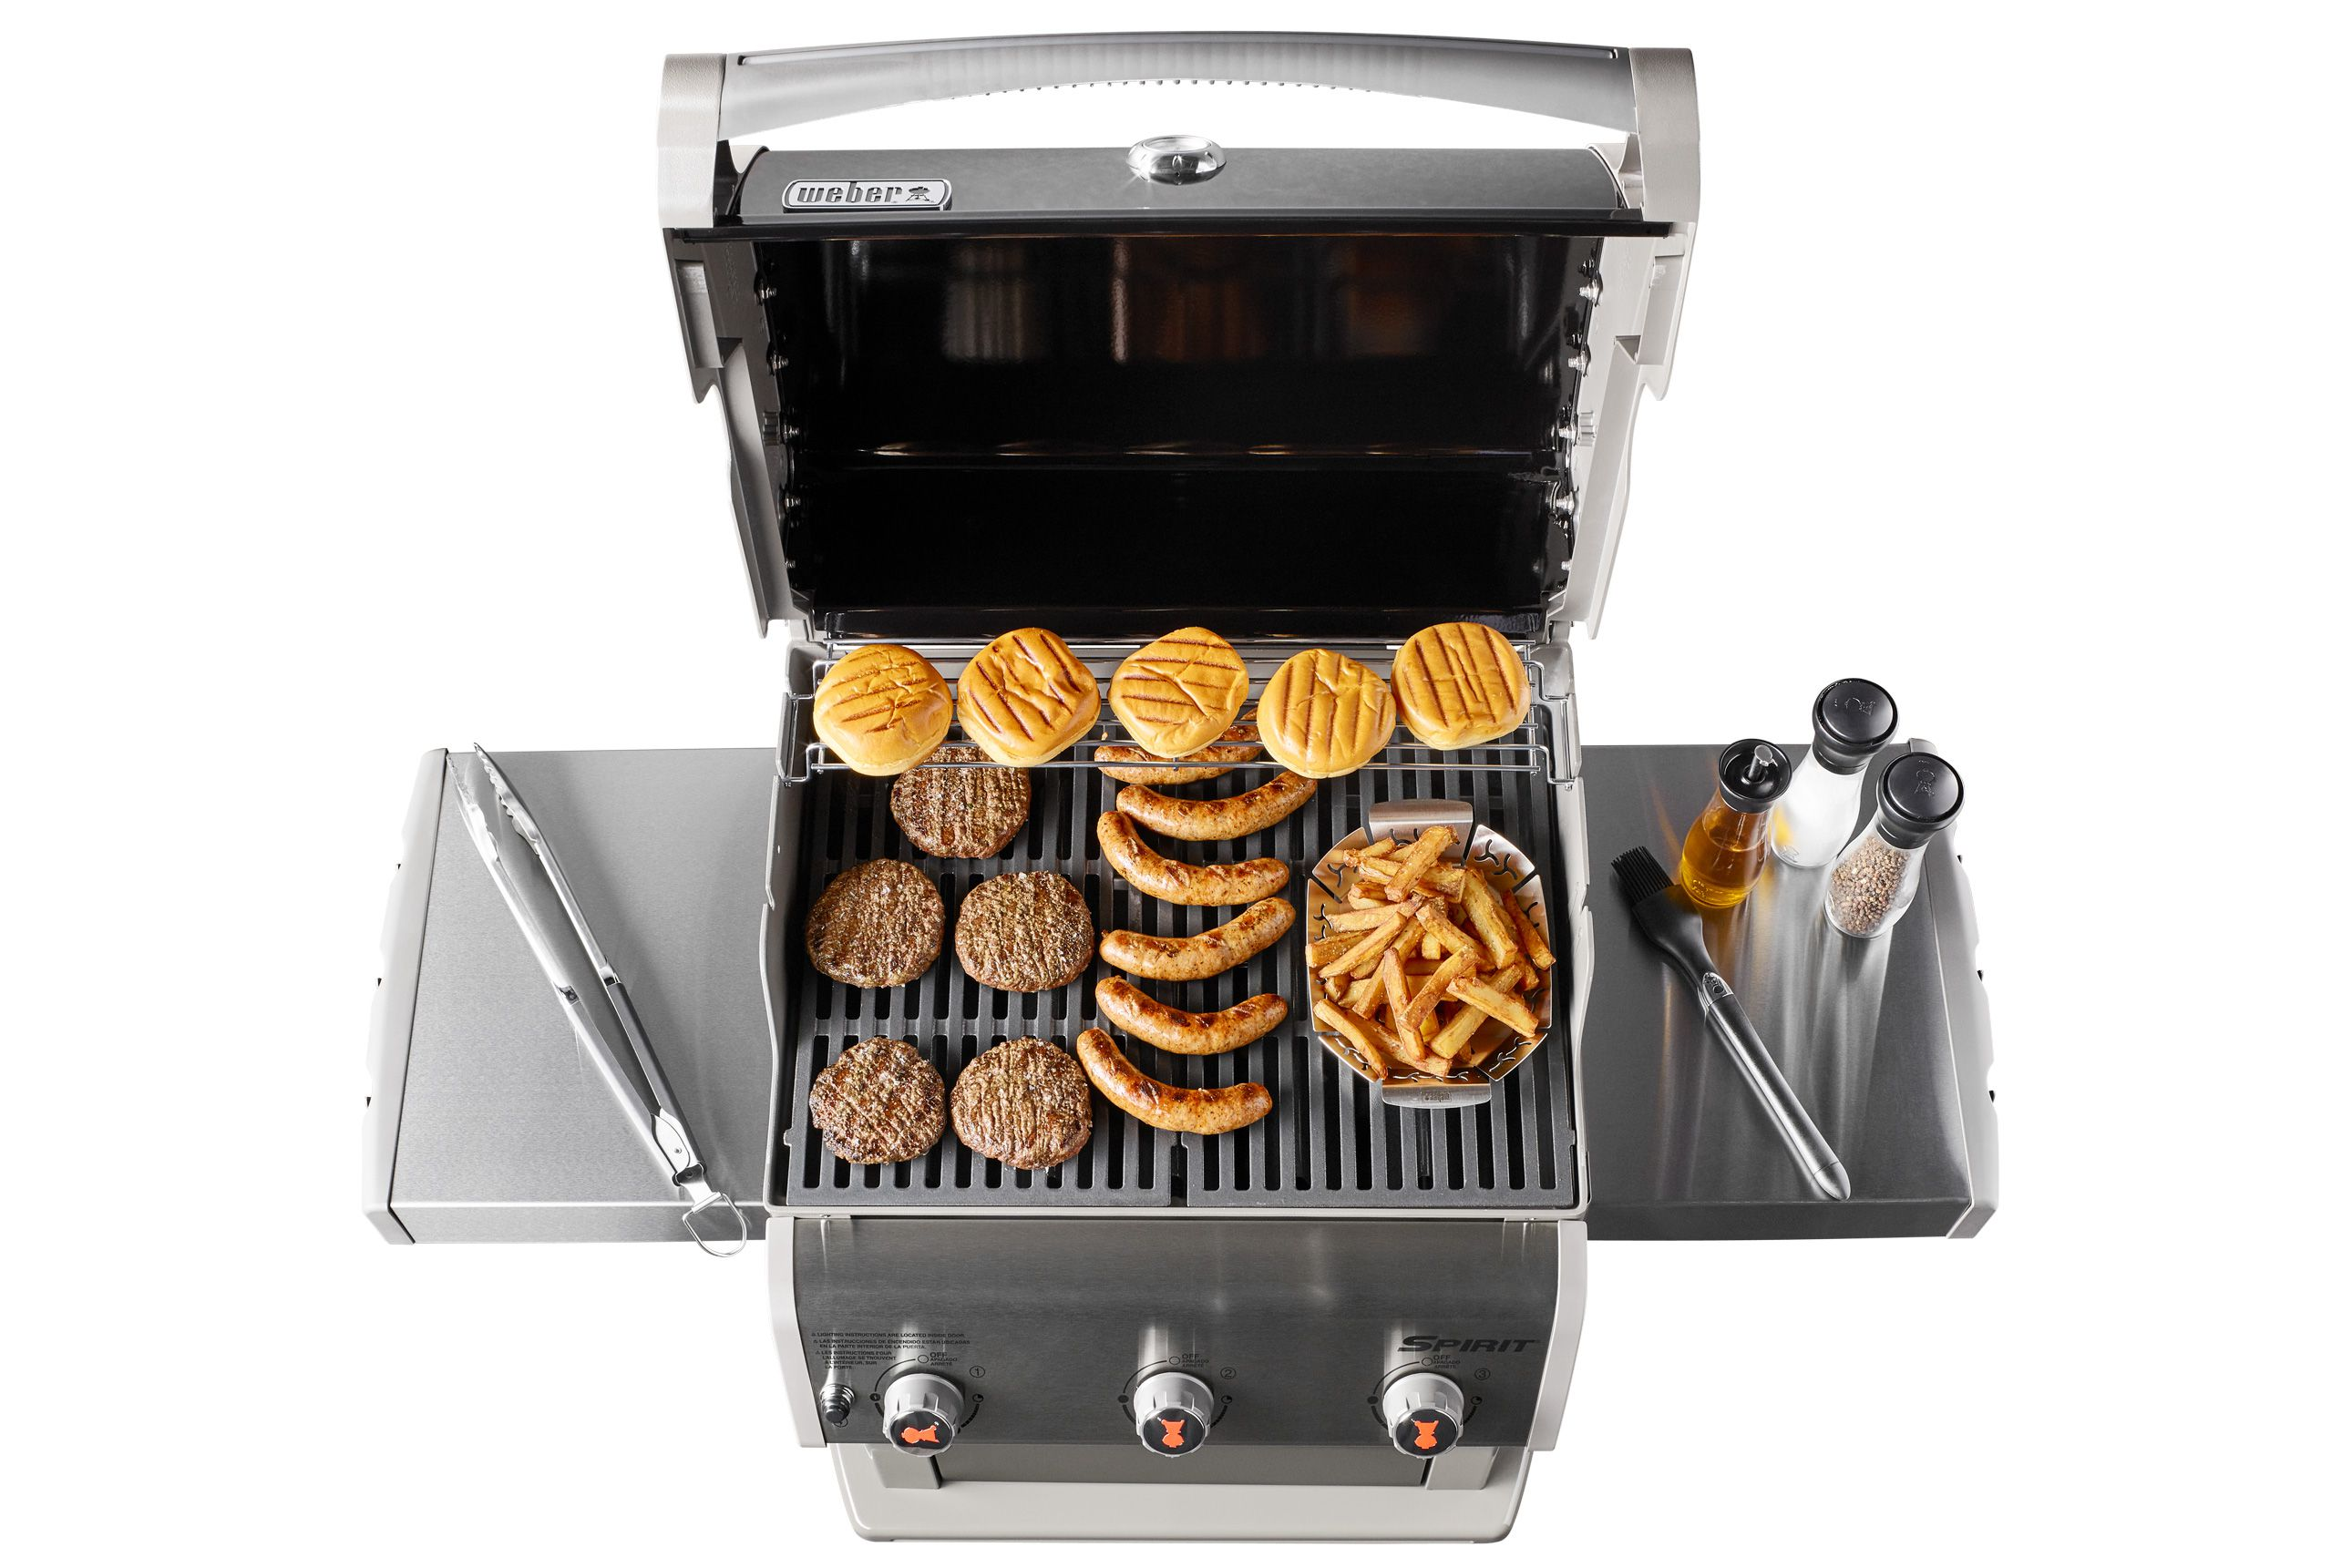 weber spirit e 310 gourmet bbq system gas grill review. Black Bedroom Furniture Sets. Home Design Ideas